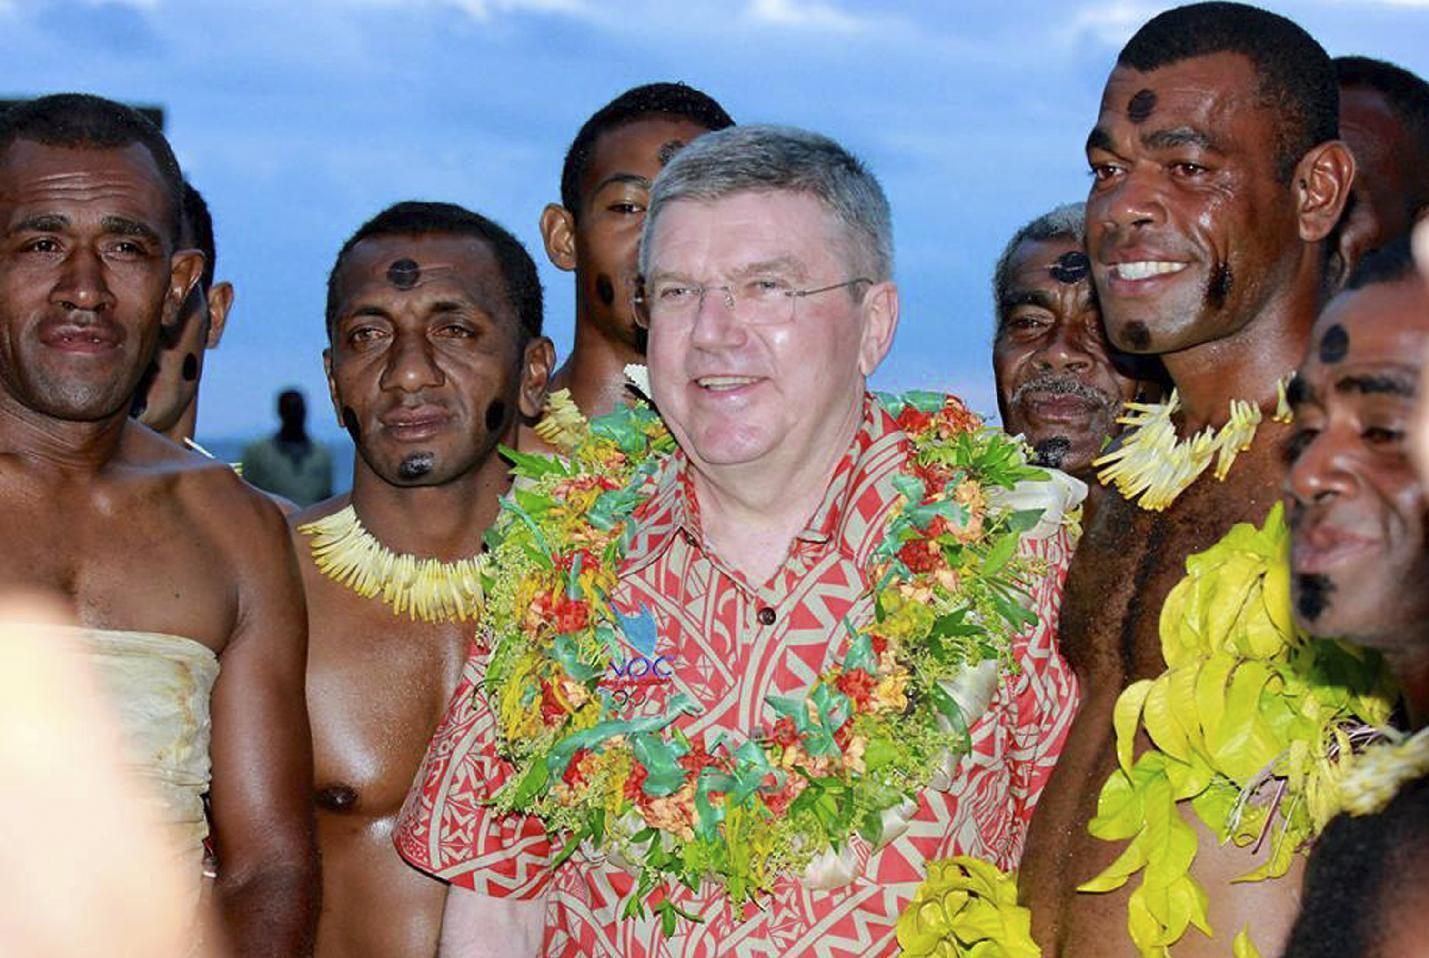 IOC chief: Small nations like New Zealand could host games